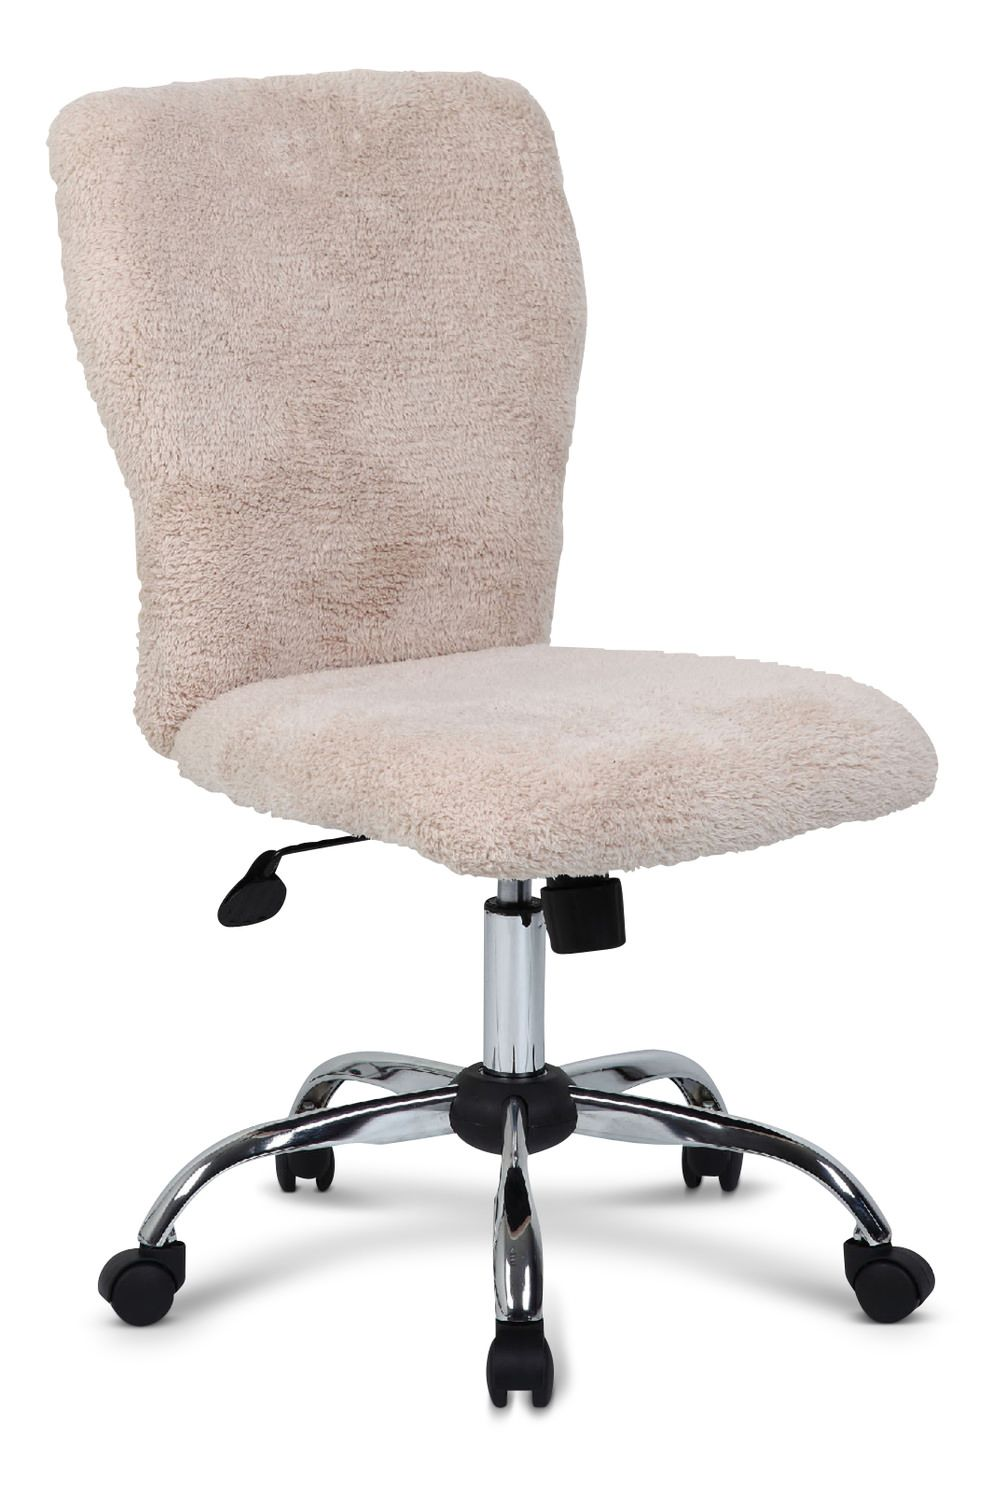 Paddington Sherpa Office chair  HOM Furniture  Furniture Stores